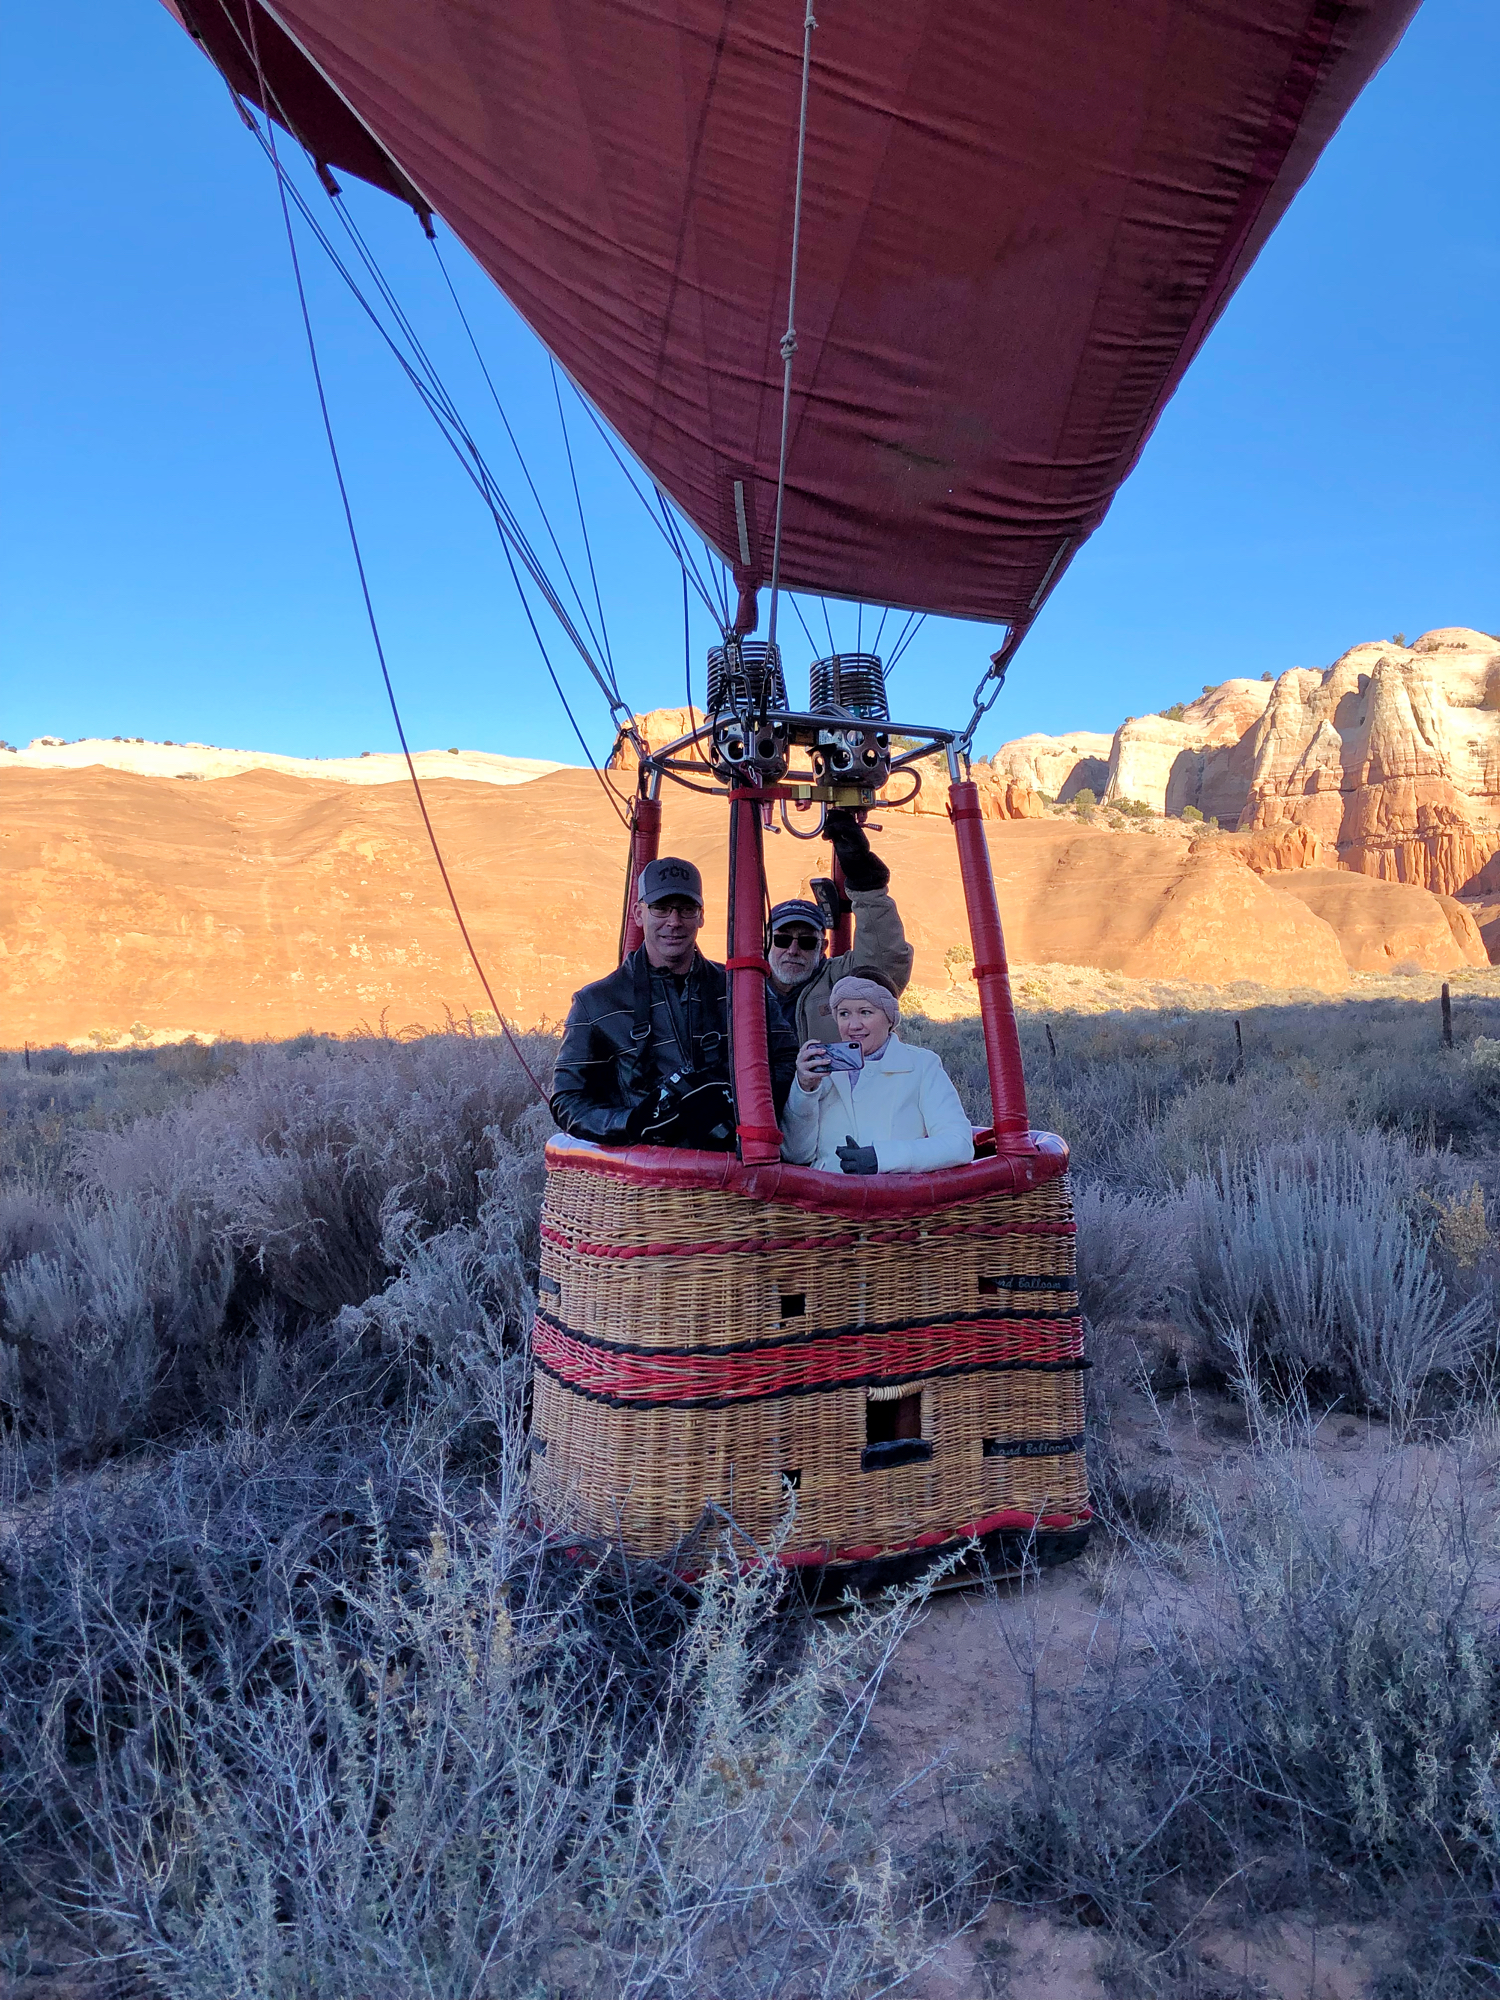 ready to take off on hot air balloon ride